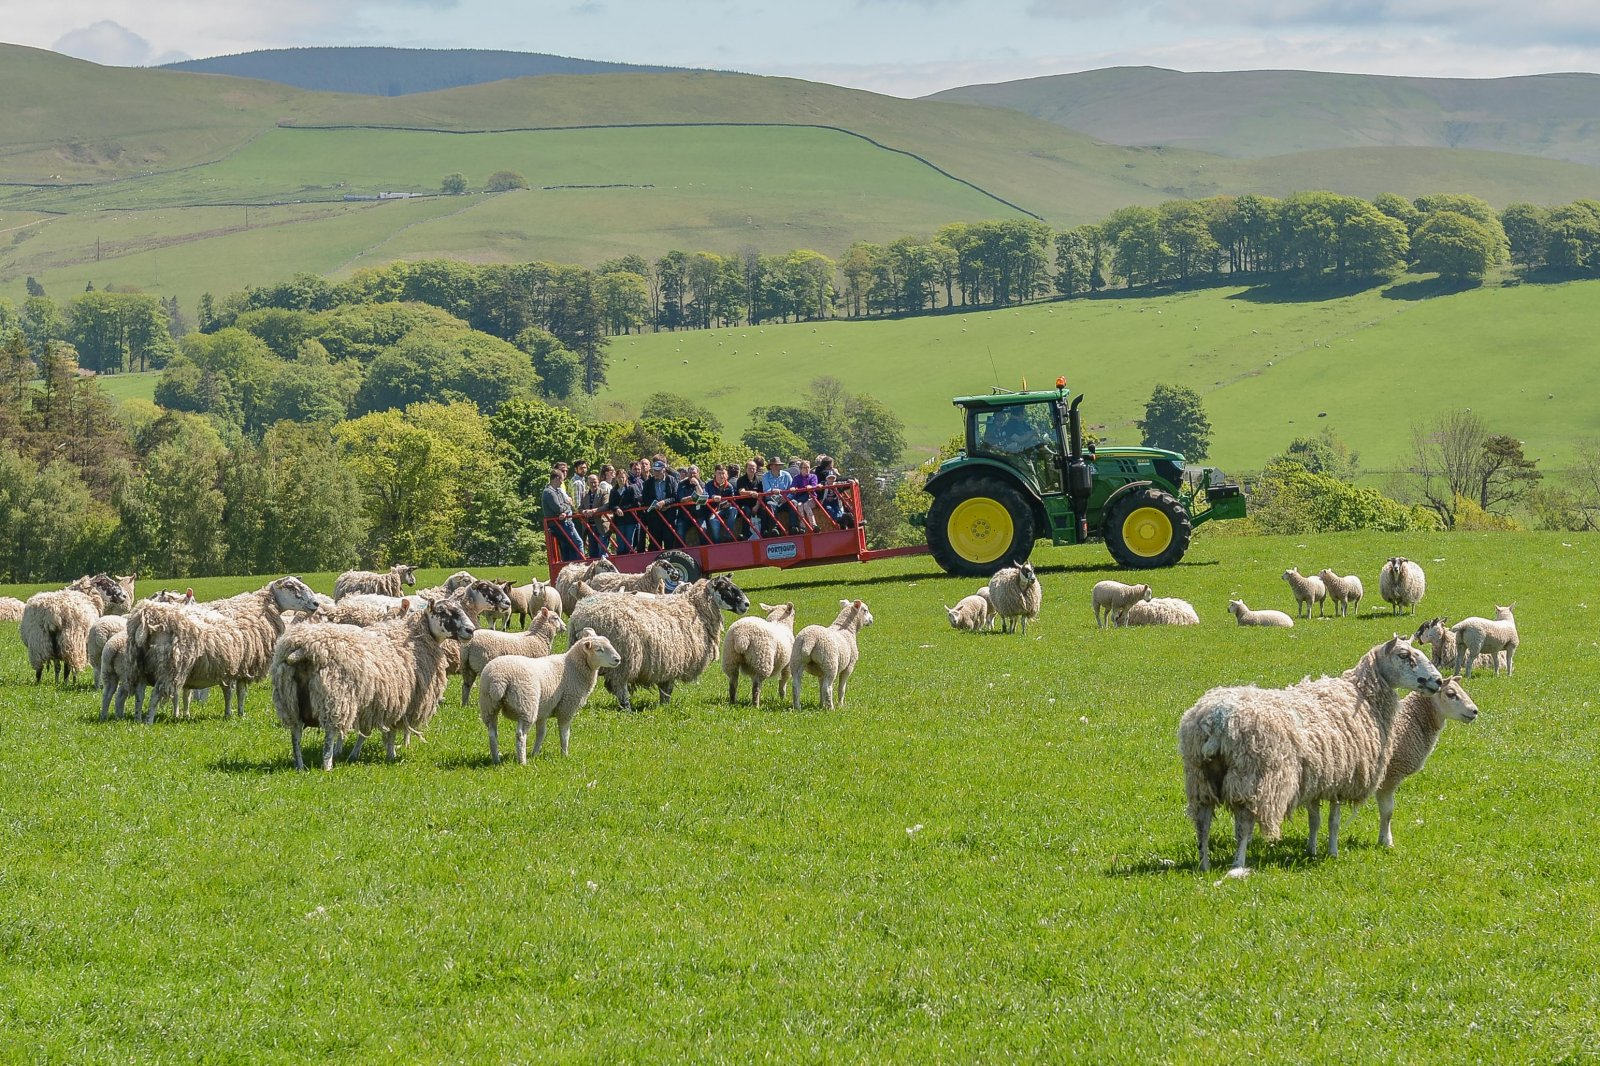 The farm tour took in just part of the huge Glenrath farming enterprise.